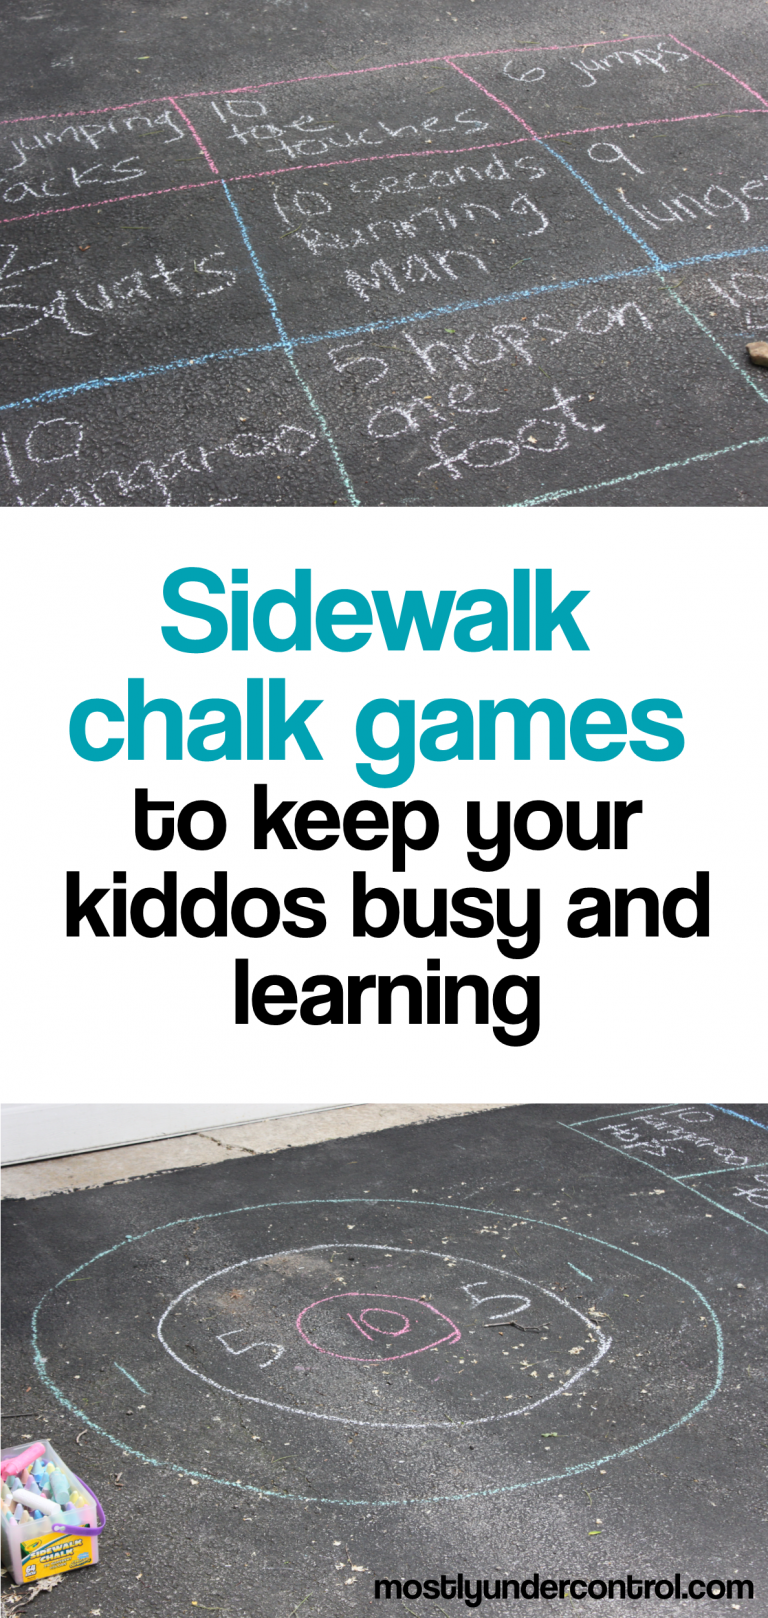 Sidewalk chalk games to keep your kiddos busy and learning